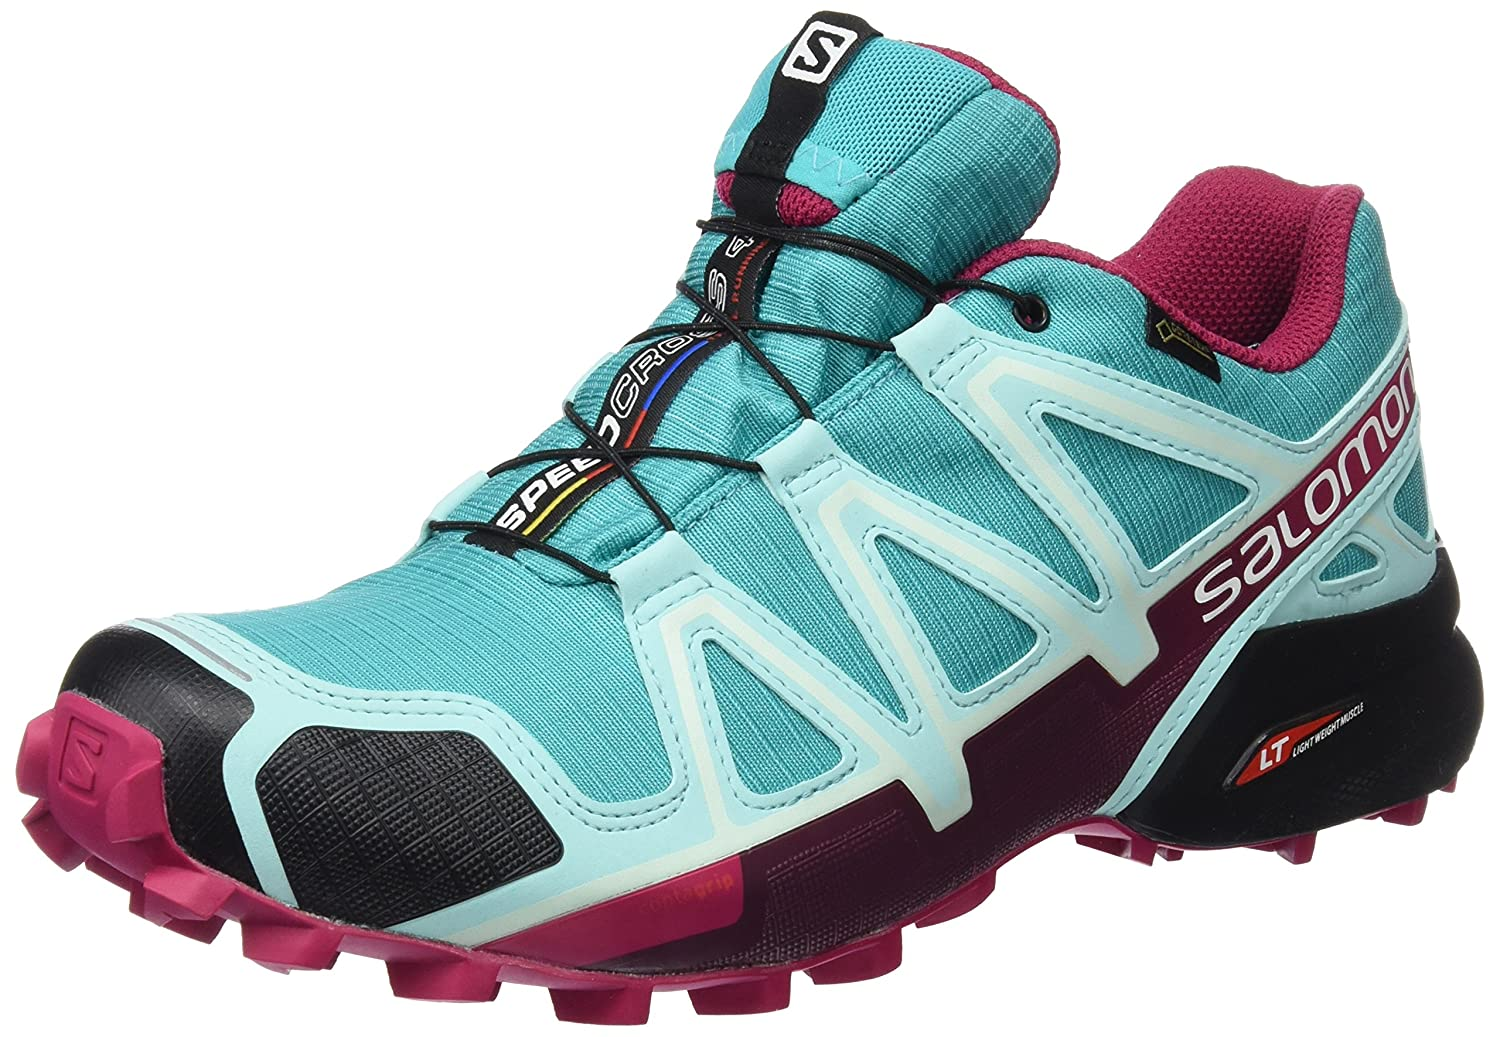 Salomon Speedcross 4 GTX W, Calzado de Trail Running para Mujer 37 1/3 EU|Multicolor (Ceramic/Aruba Blue/Sangria)